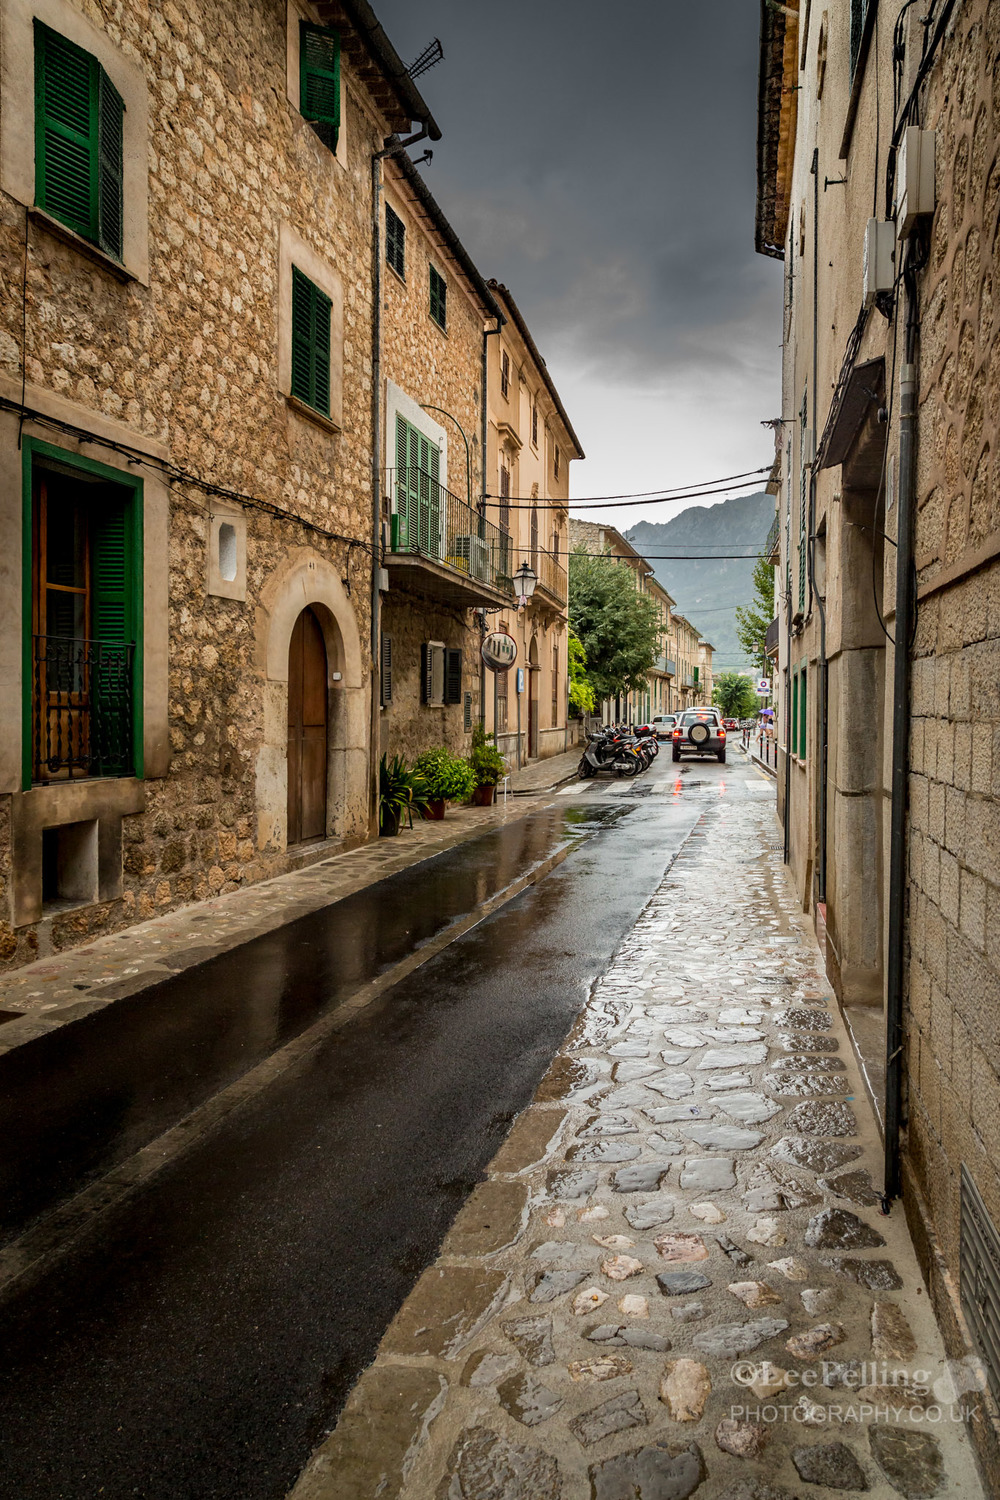 Rainny Day in Soller